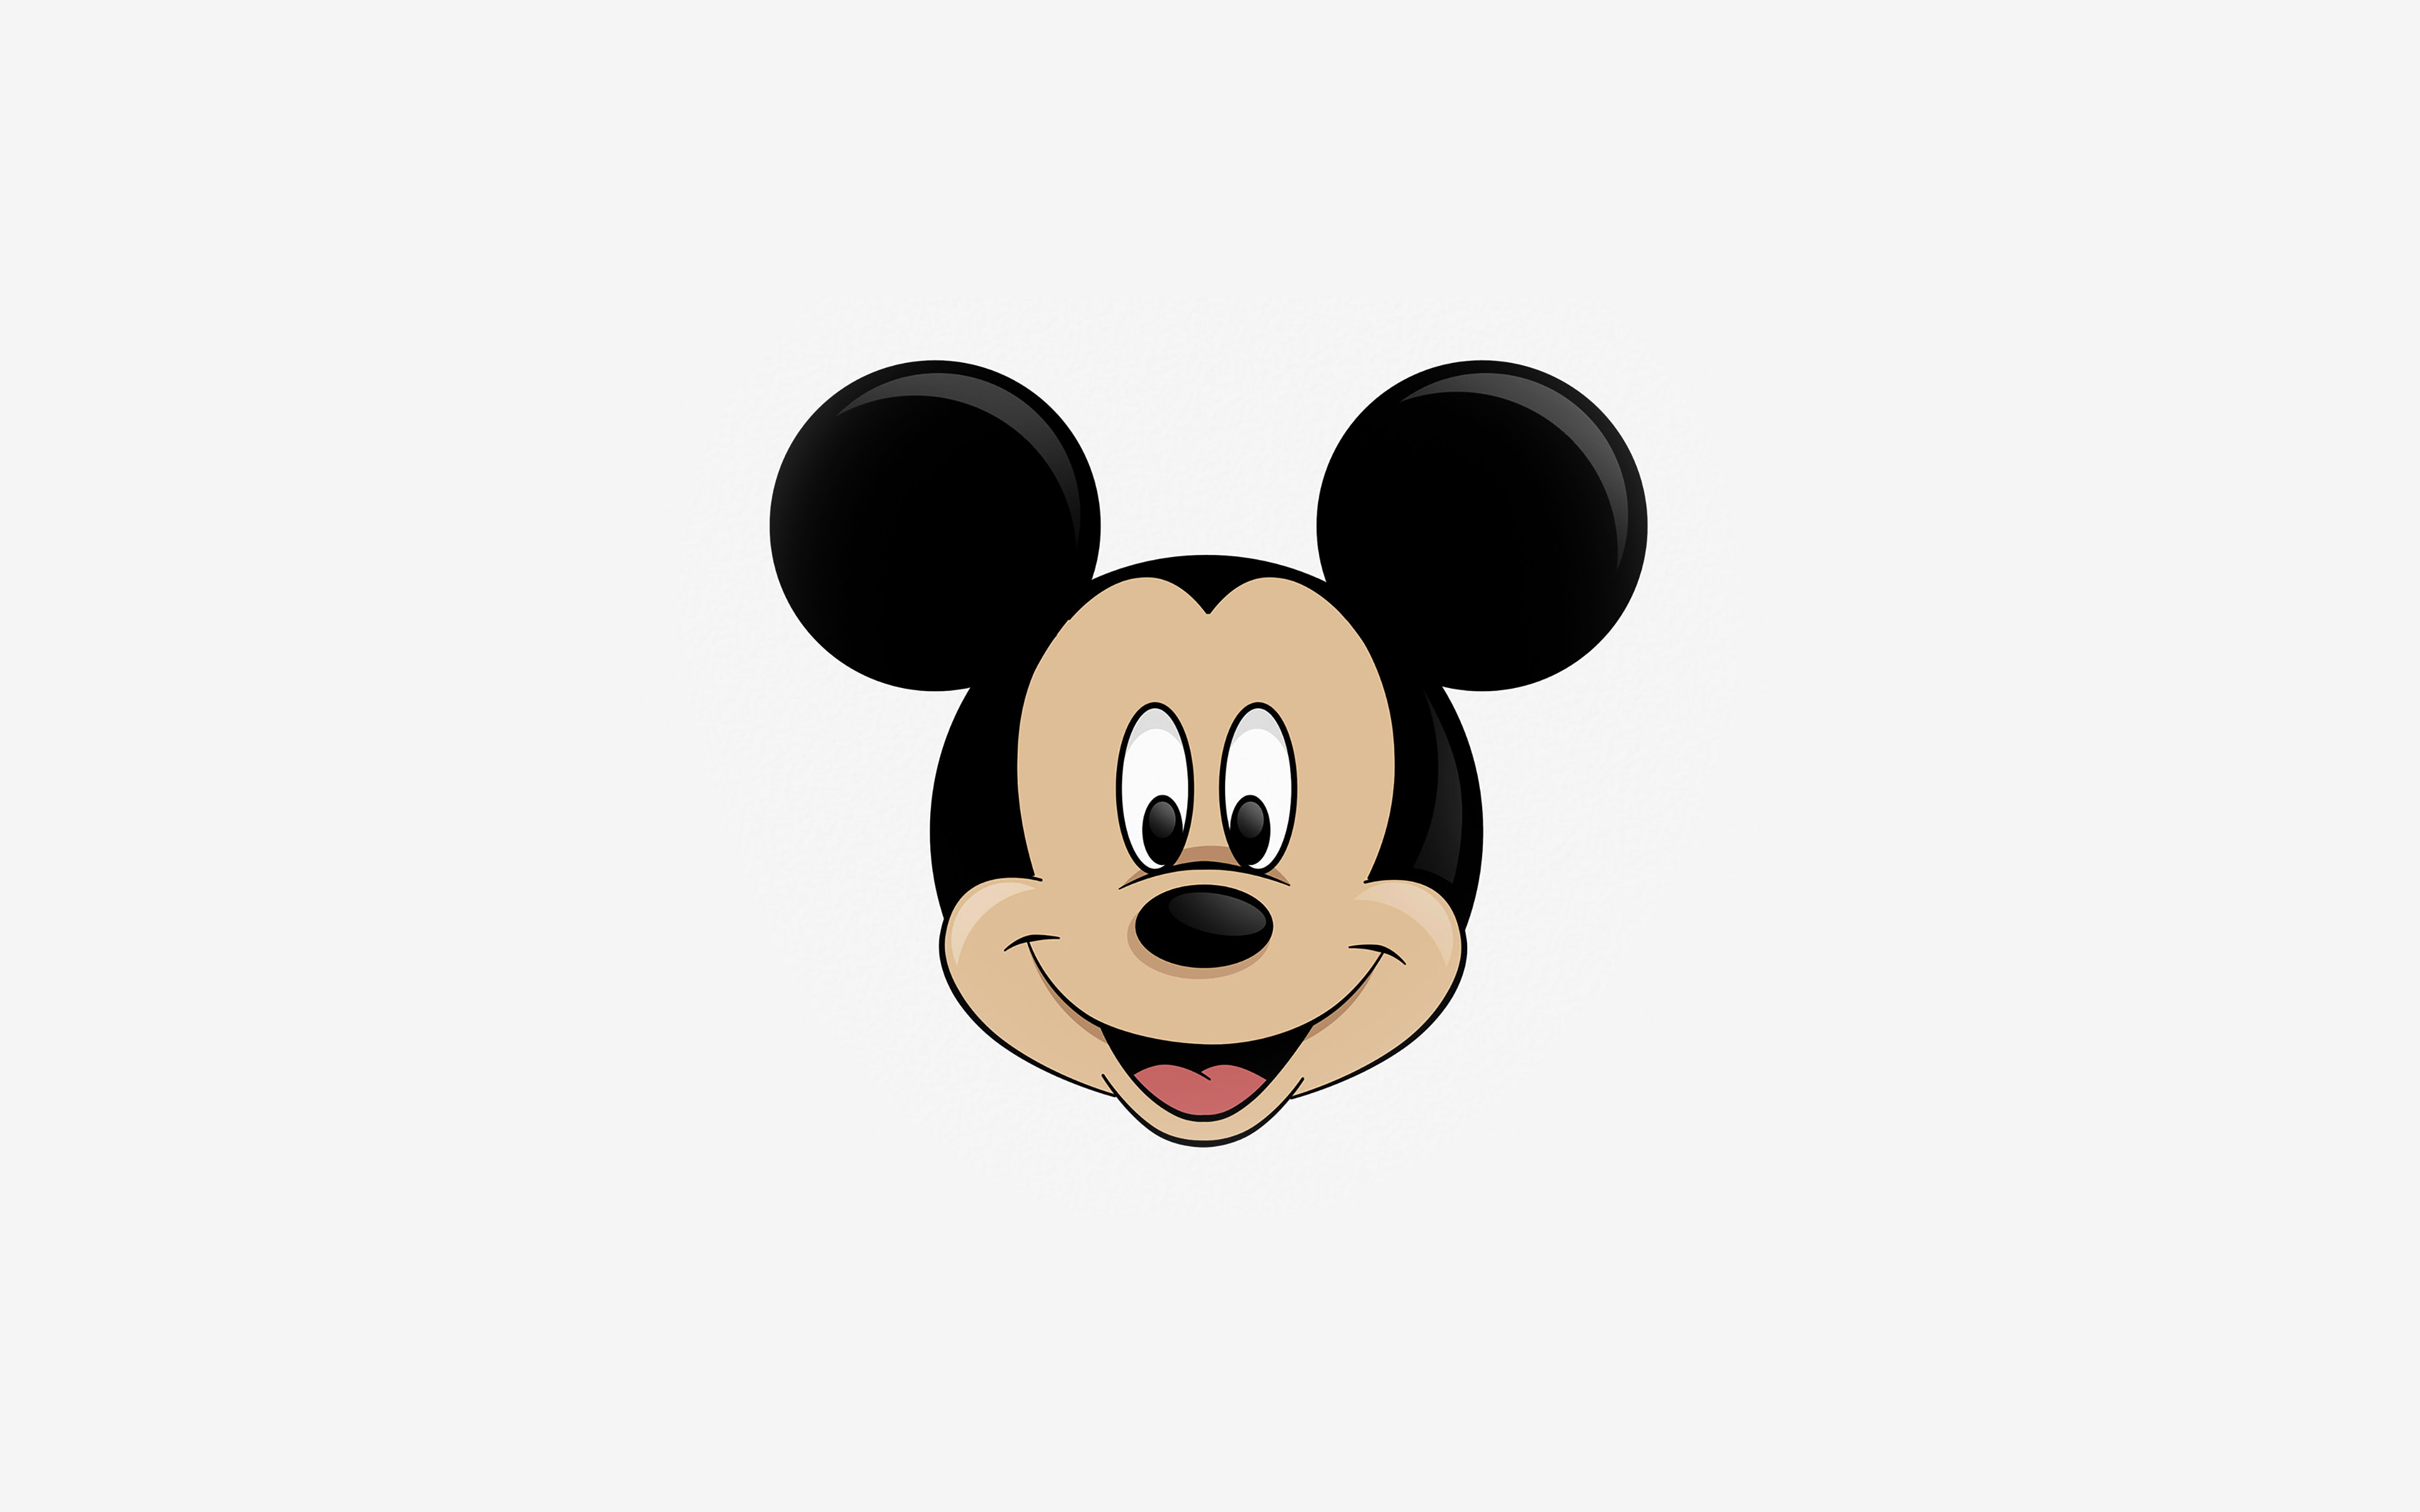 disney essays Disney college program - free online college scholarship search more than 2,300 sources of college funding, totaling nearly $3 billion in available aid scholarships.